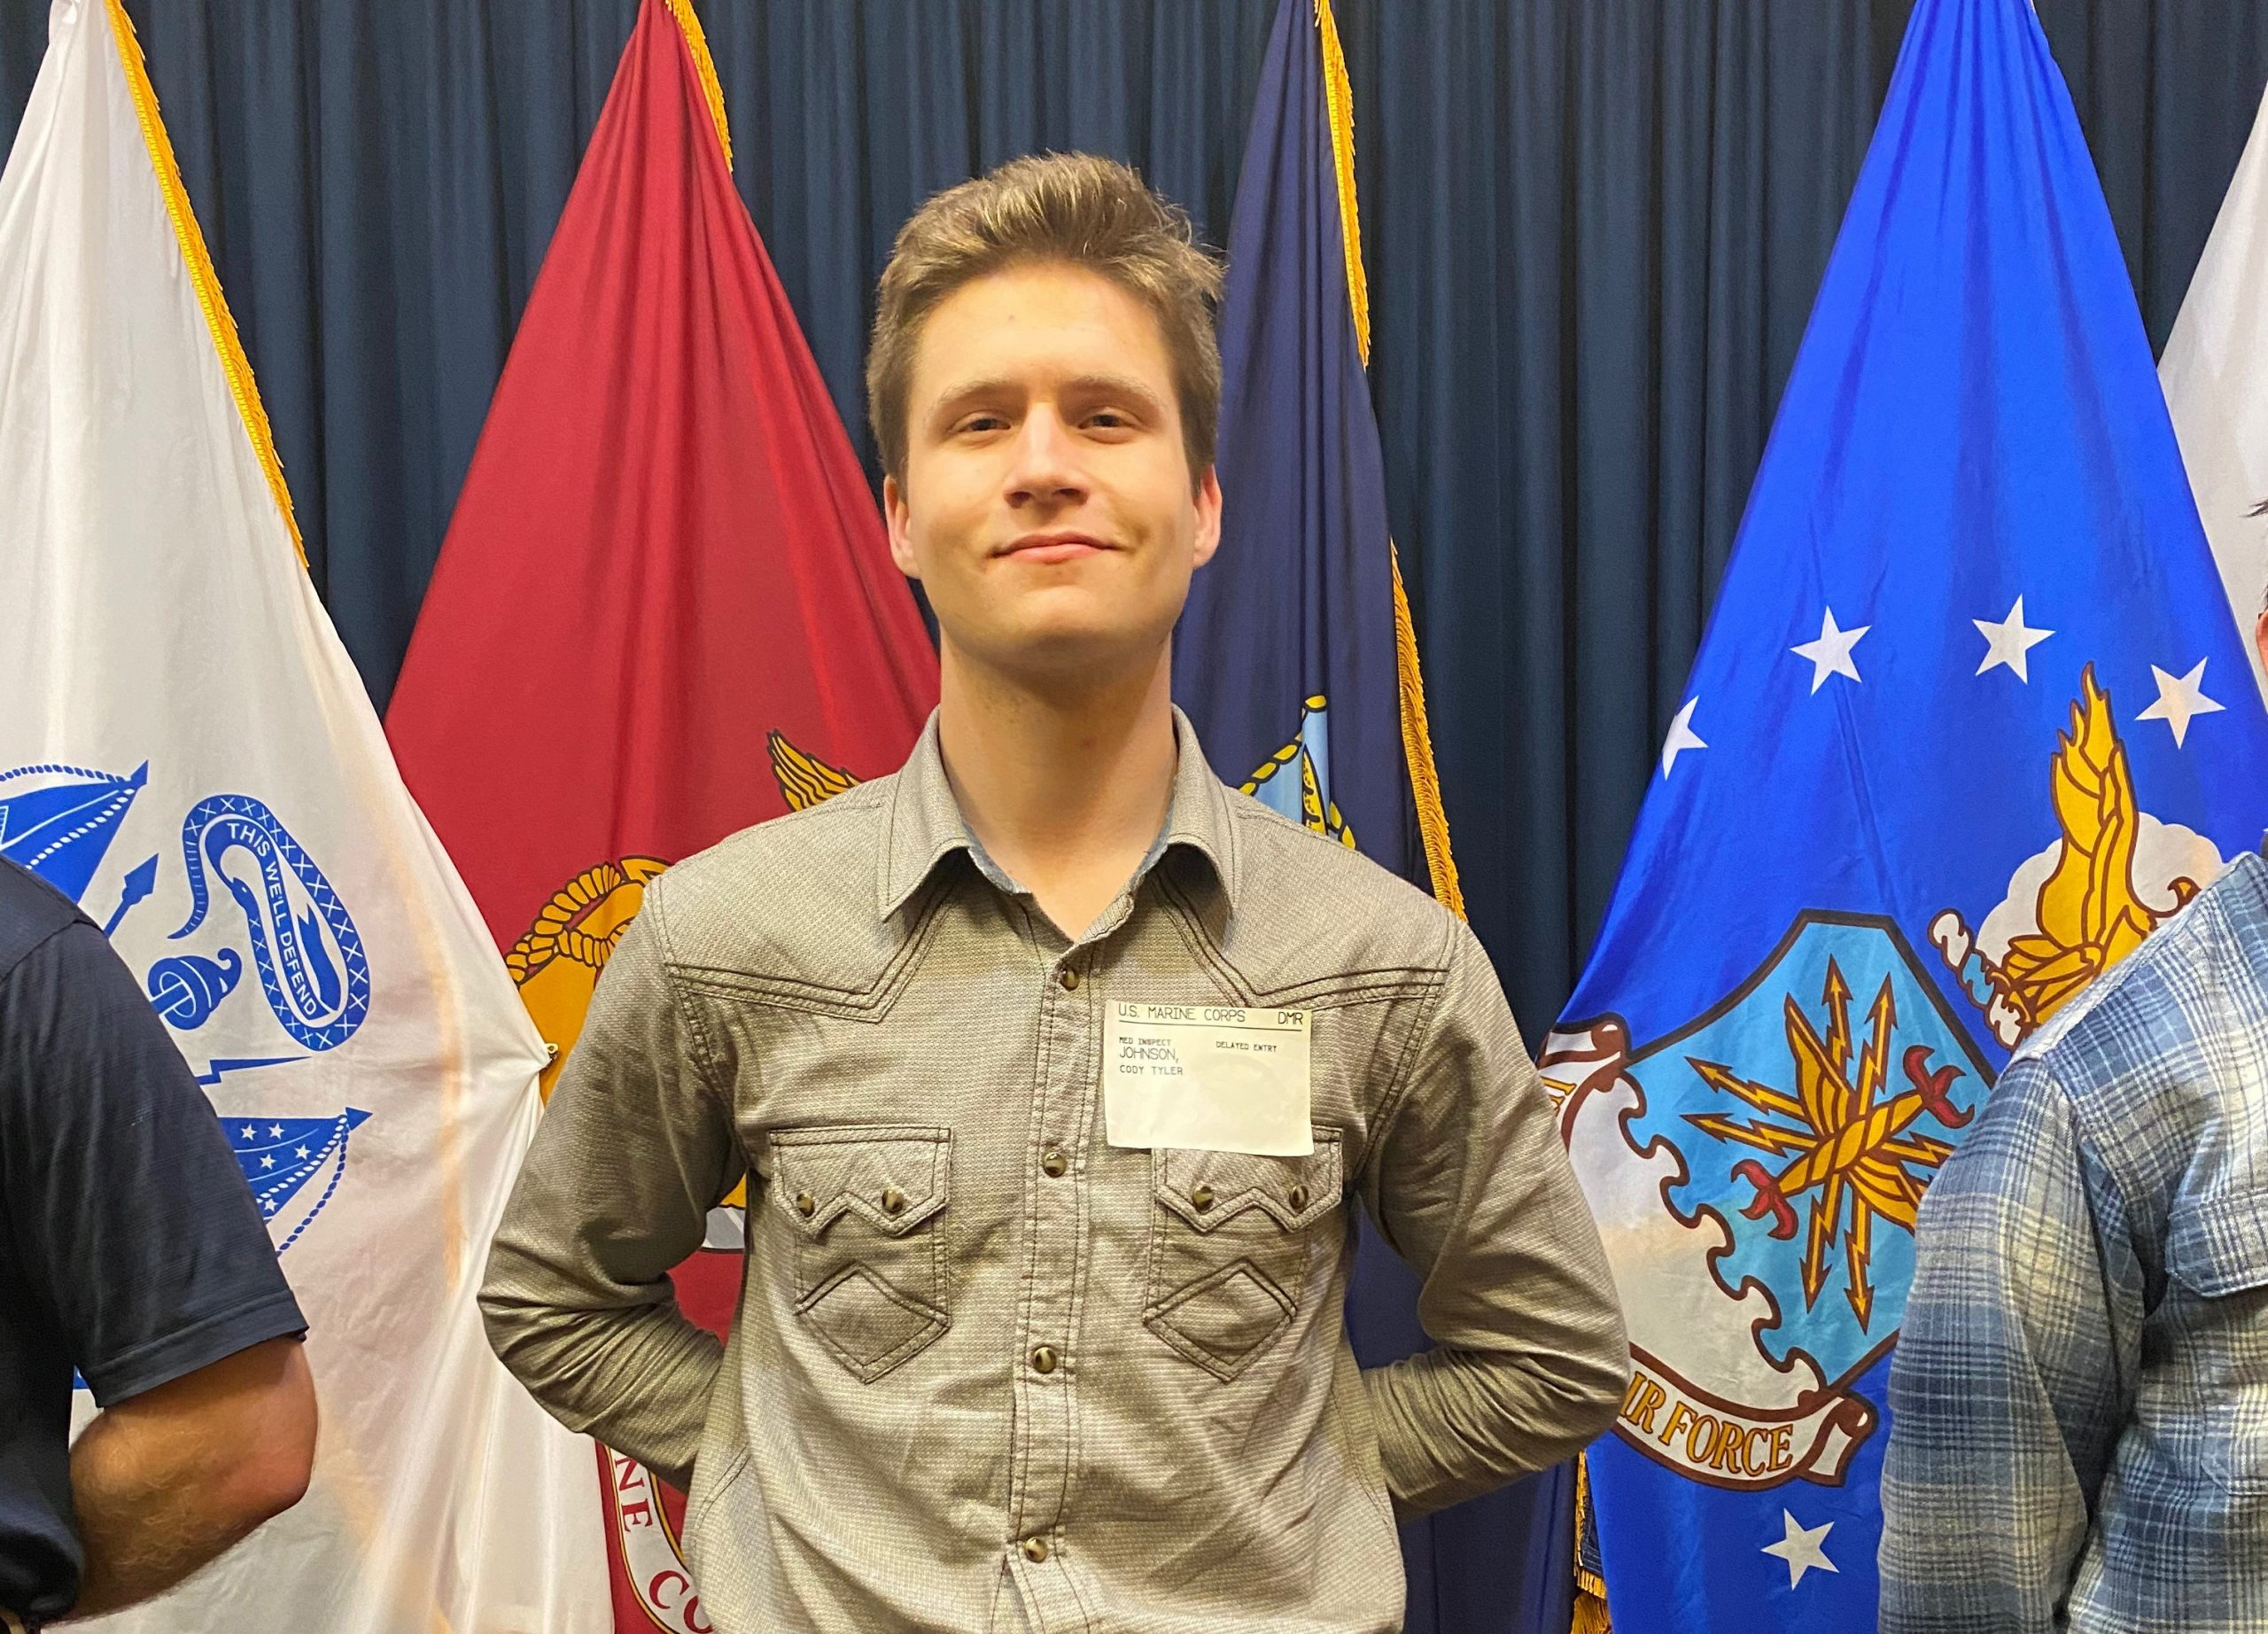 Video: Real County's Cody Tyler Johnson enlists in to United States Marine Corps